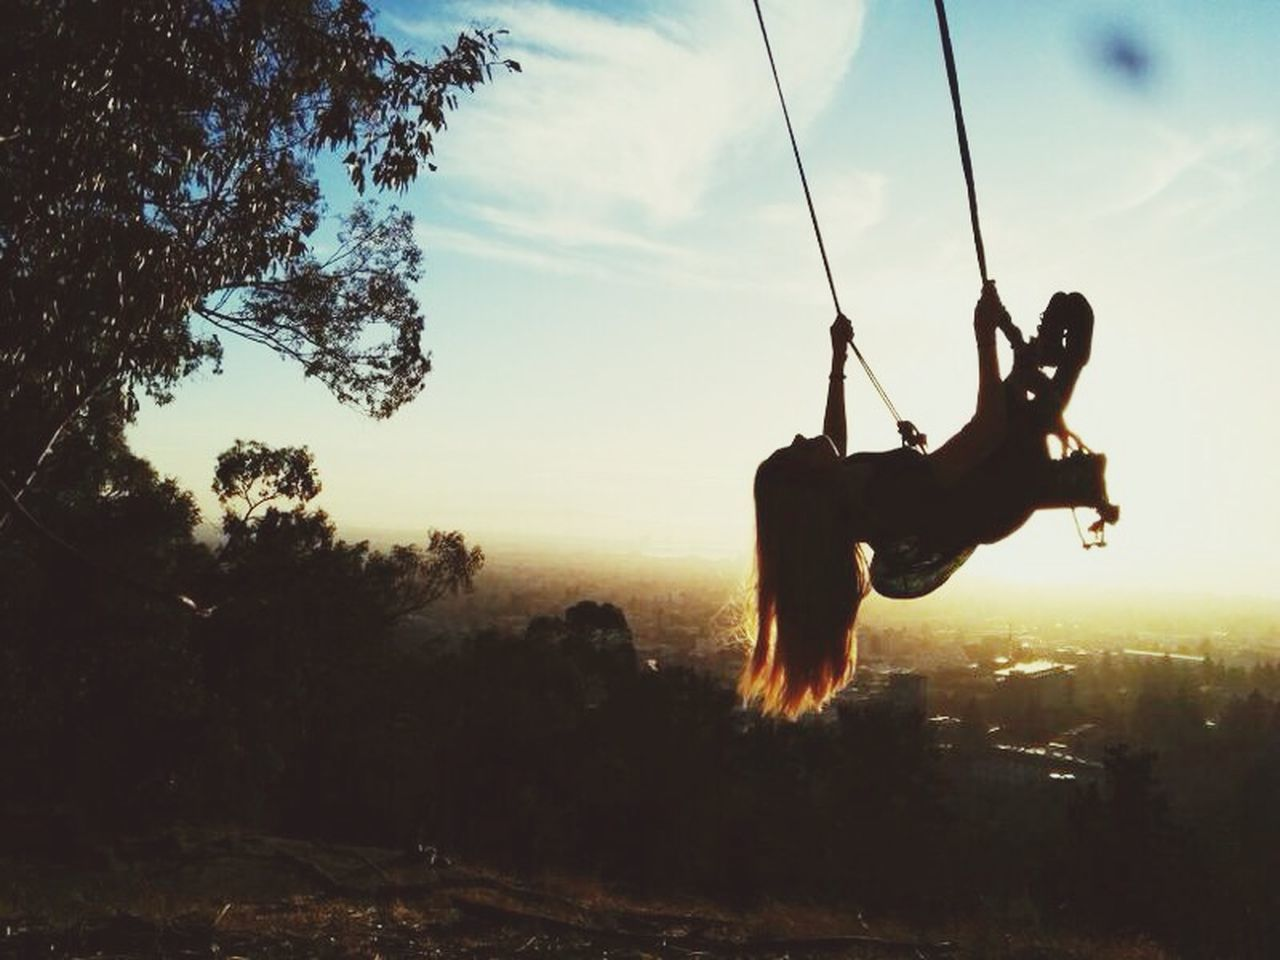 Low angle view of girls swinging in park during sunset